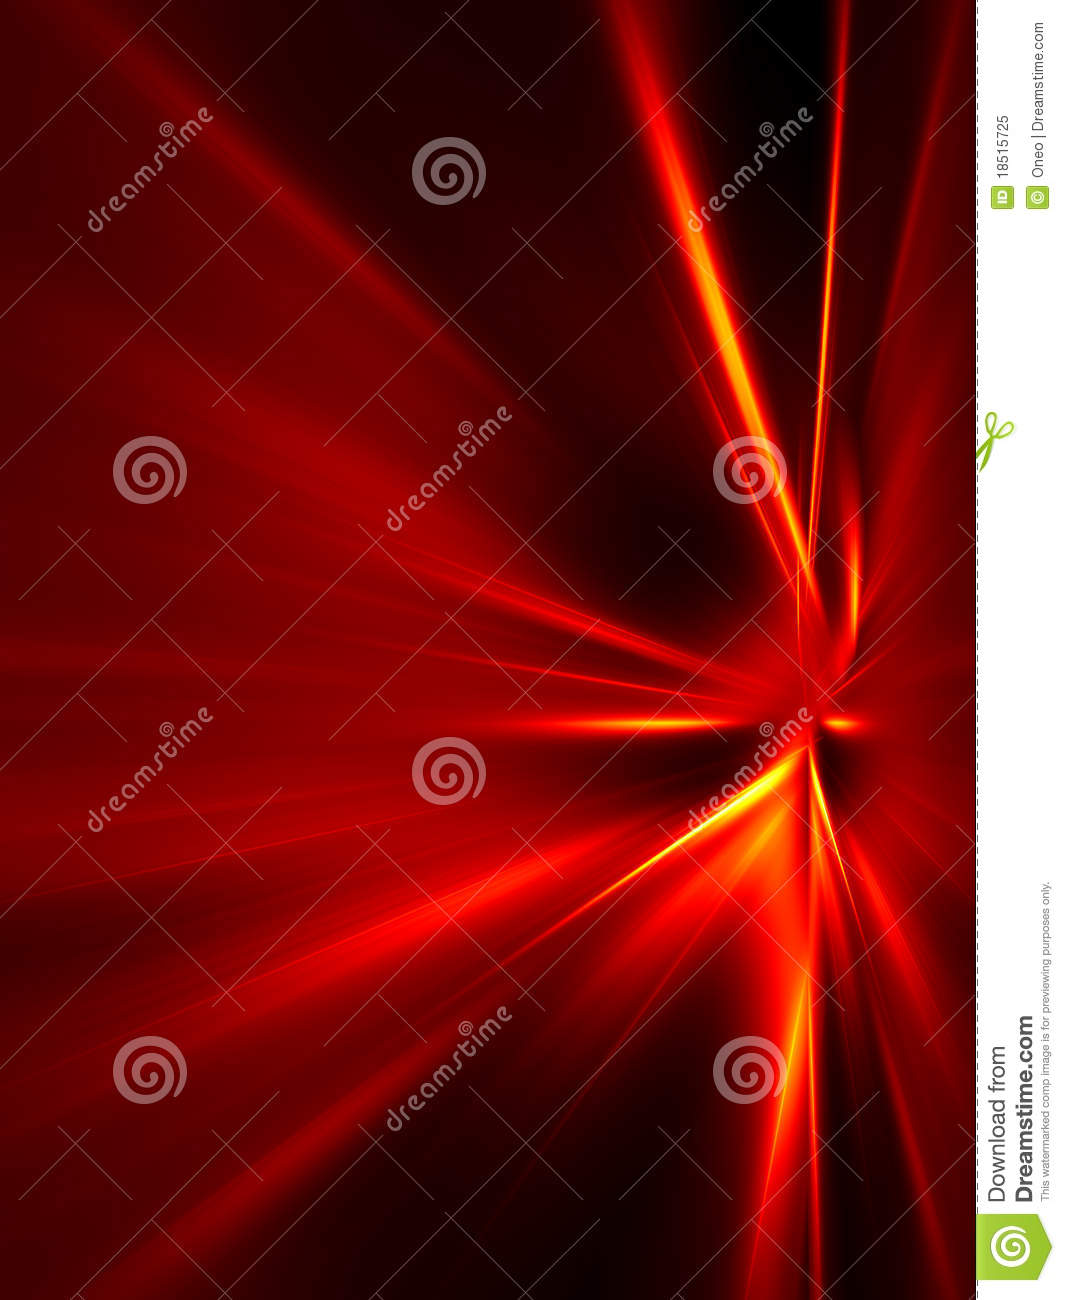 Red and yellow rays on black background